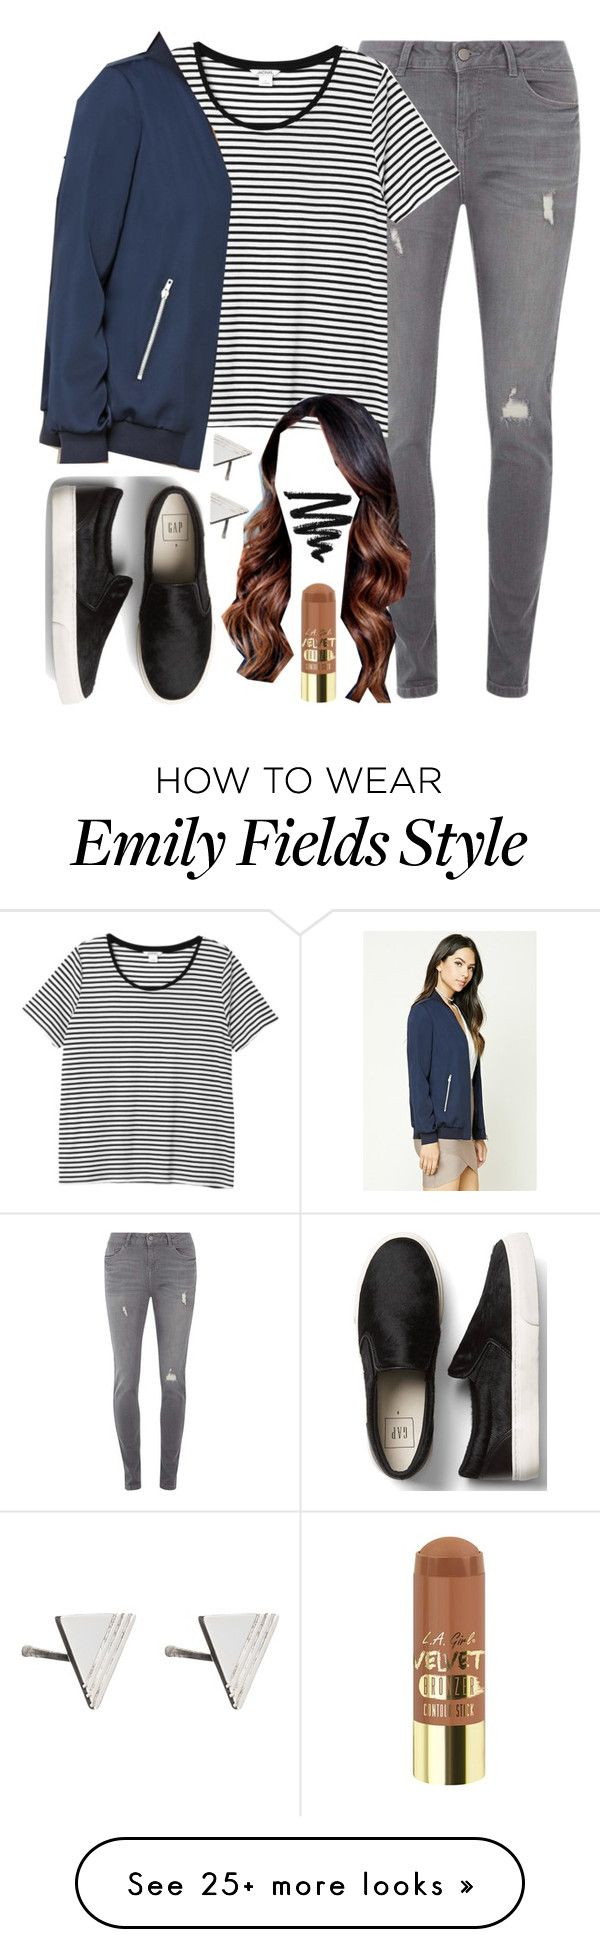 """Emily Fields inspired college outfit"" by liarsstyle on Polyvore featuring Dorothy Perkins, Gap, Monki, Forever 21 and Rachel Jackson"